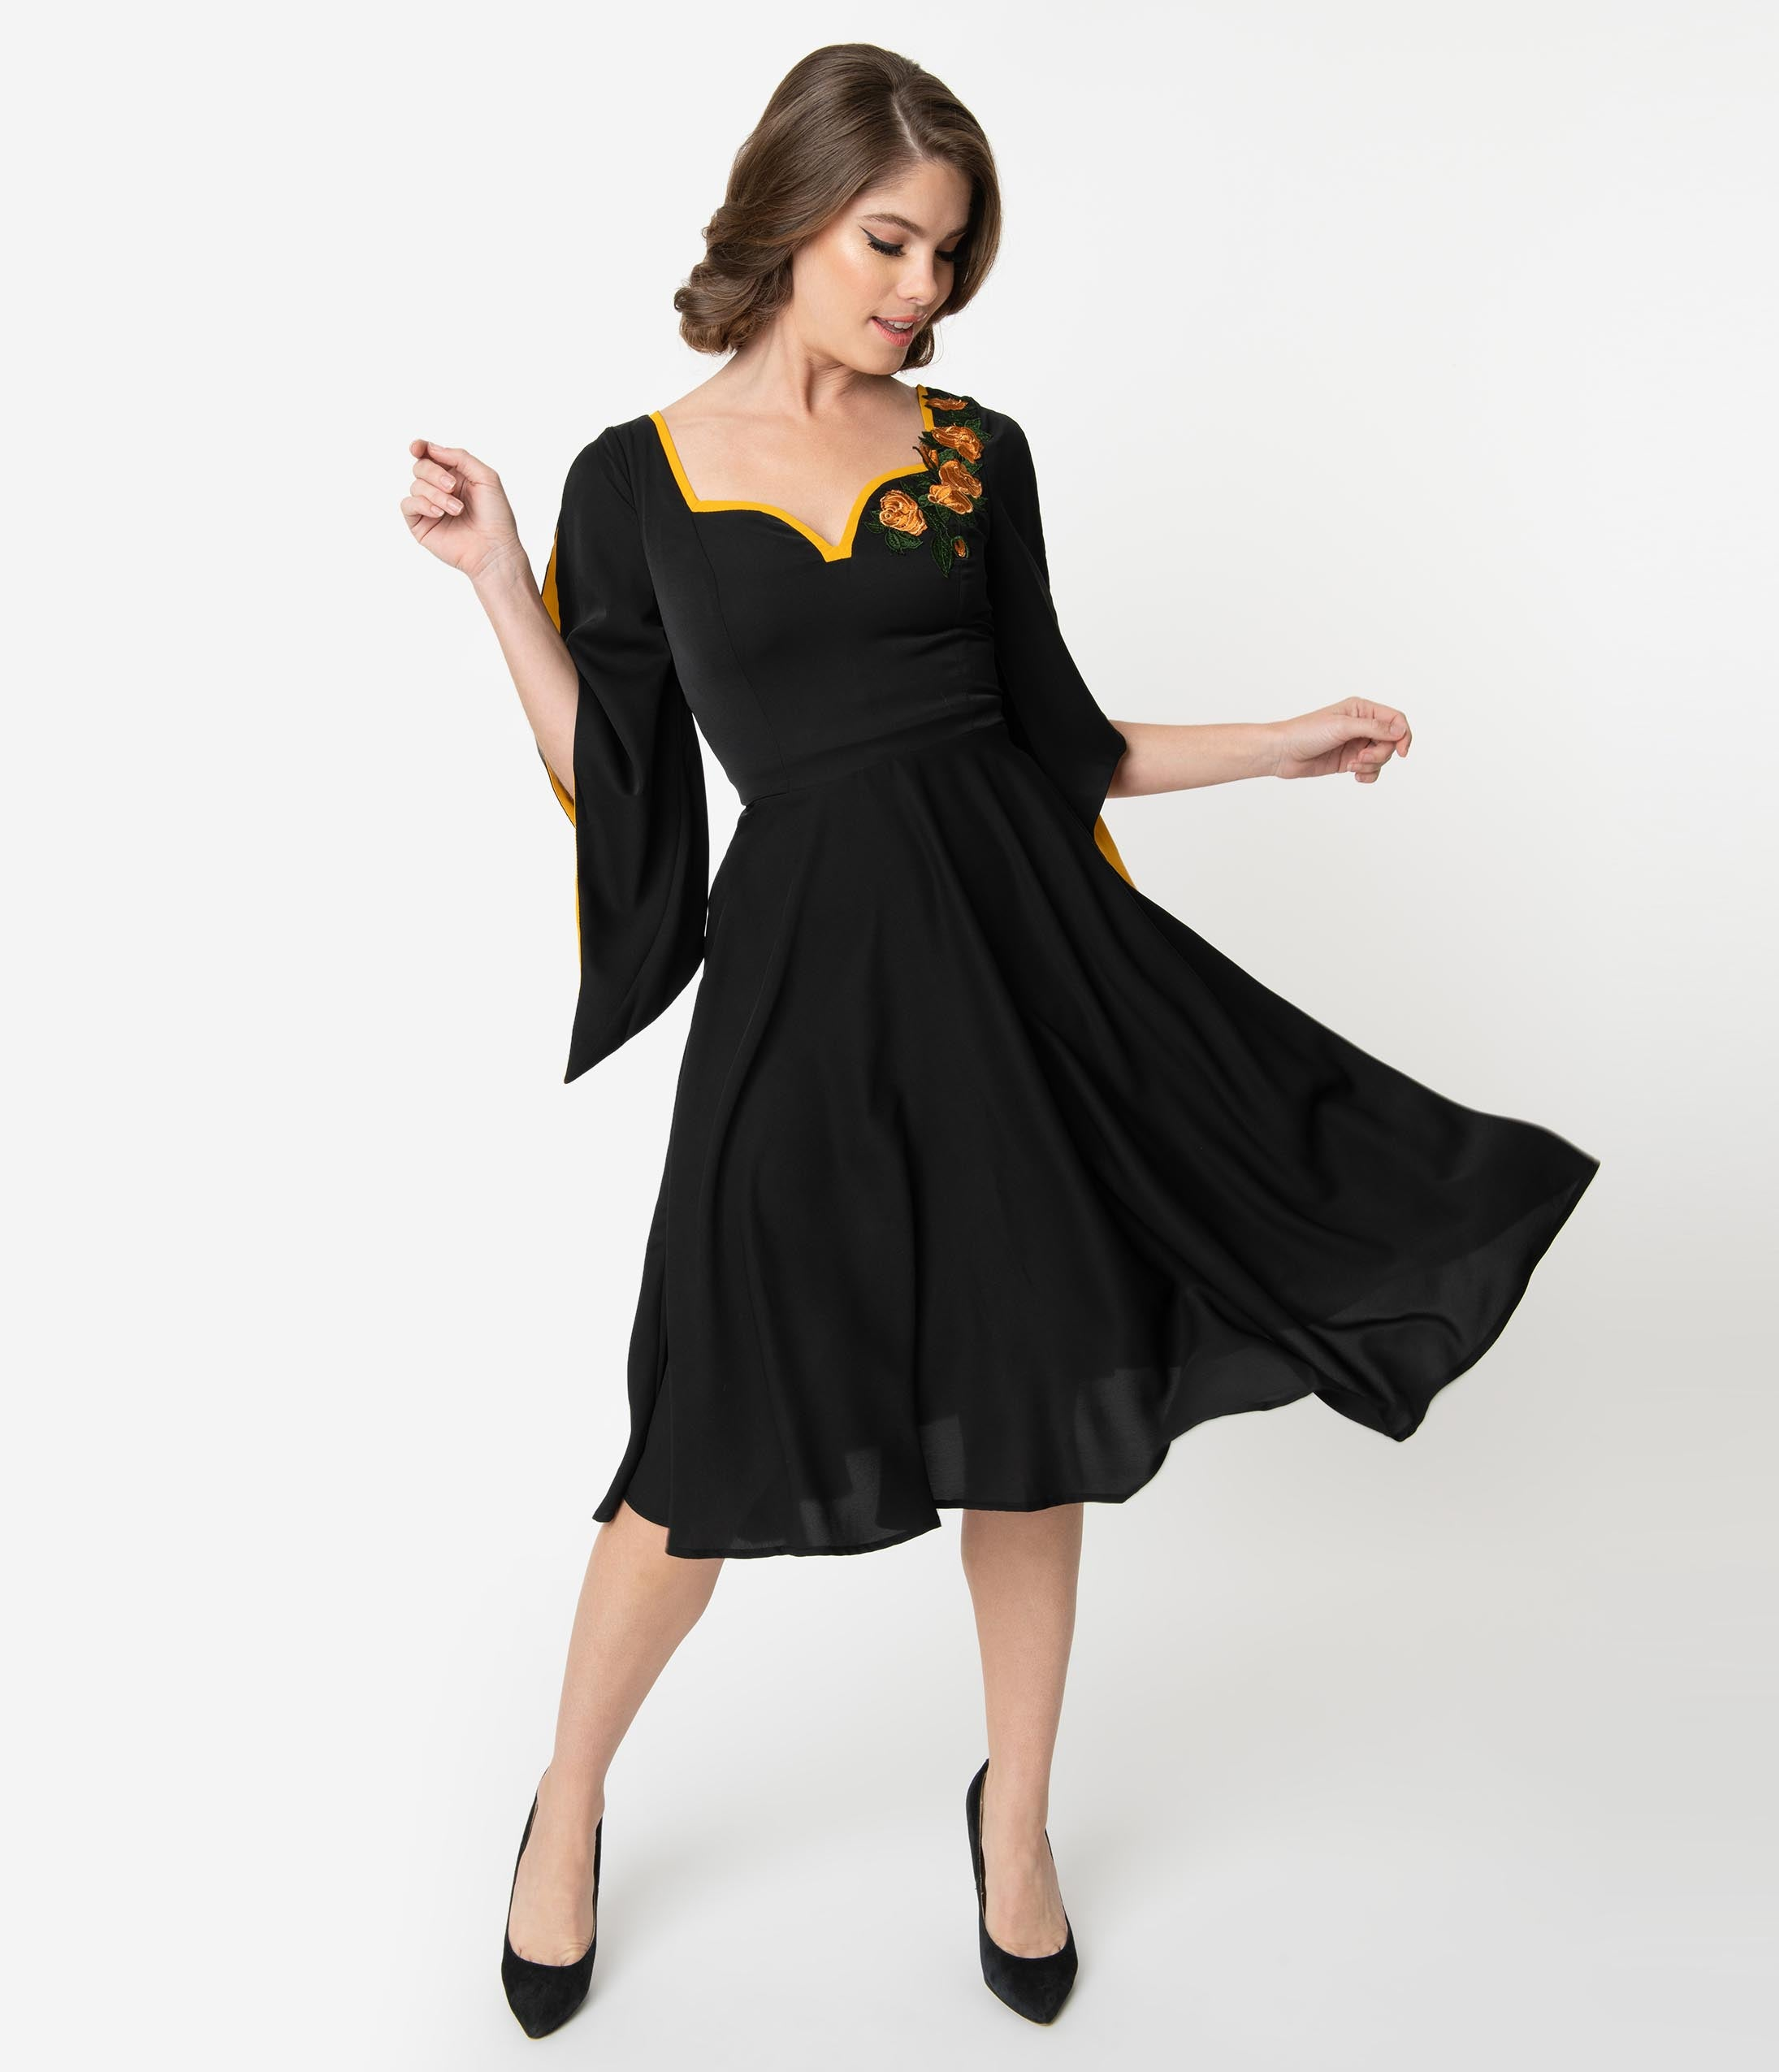 New Fifties Dresses | 50s Inspired Dresses 1940S Style Black  Mustard Embroidered Roses Lost Sunset Swing Dress $118.00 AT vintagedancer.com